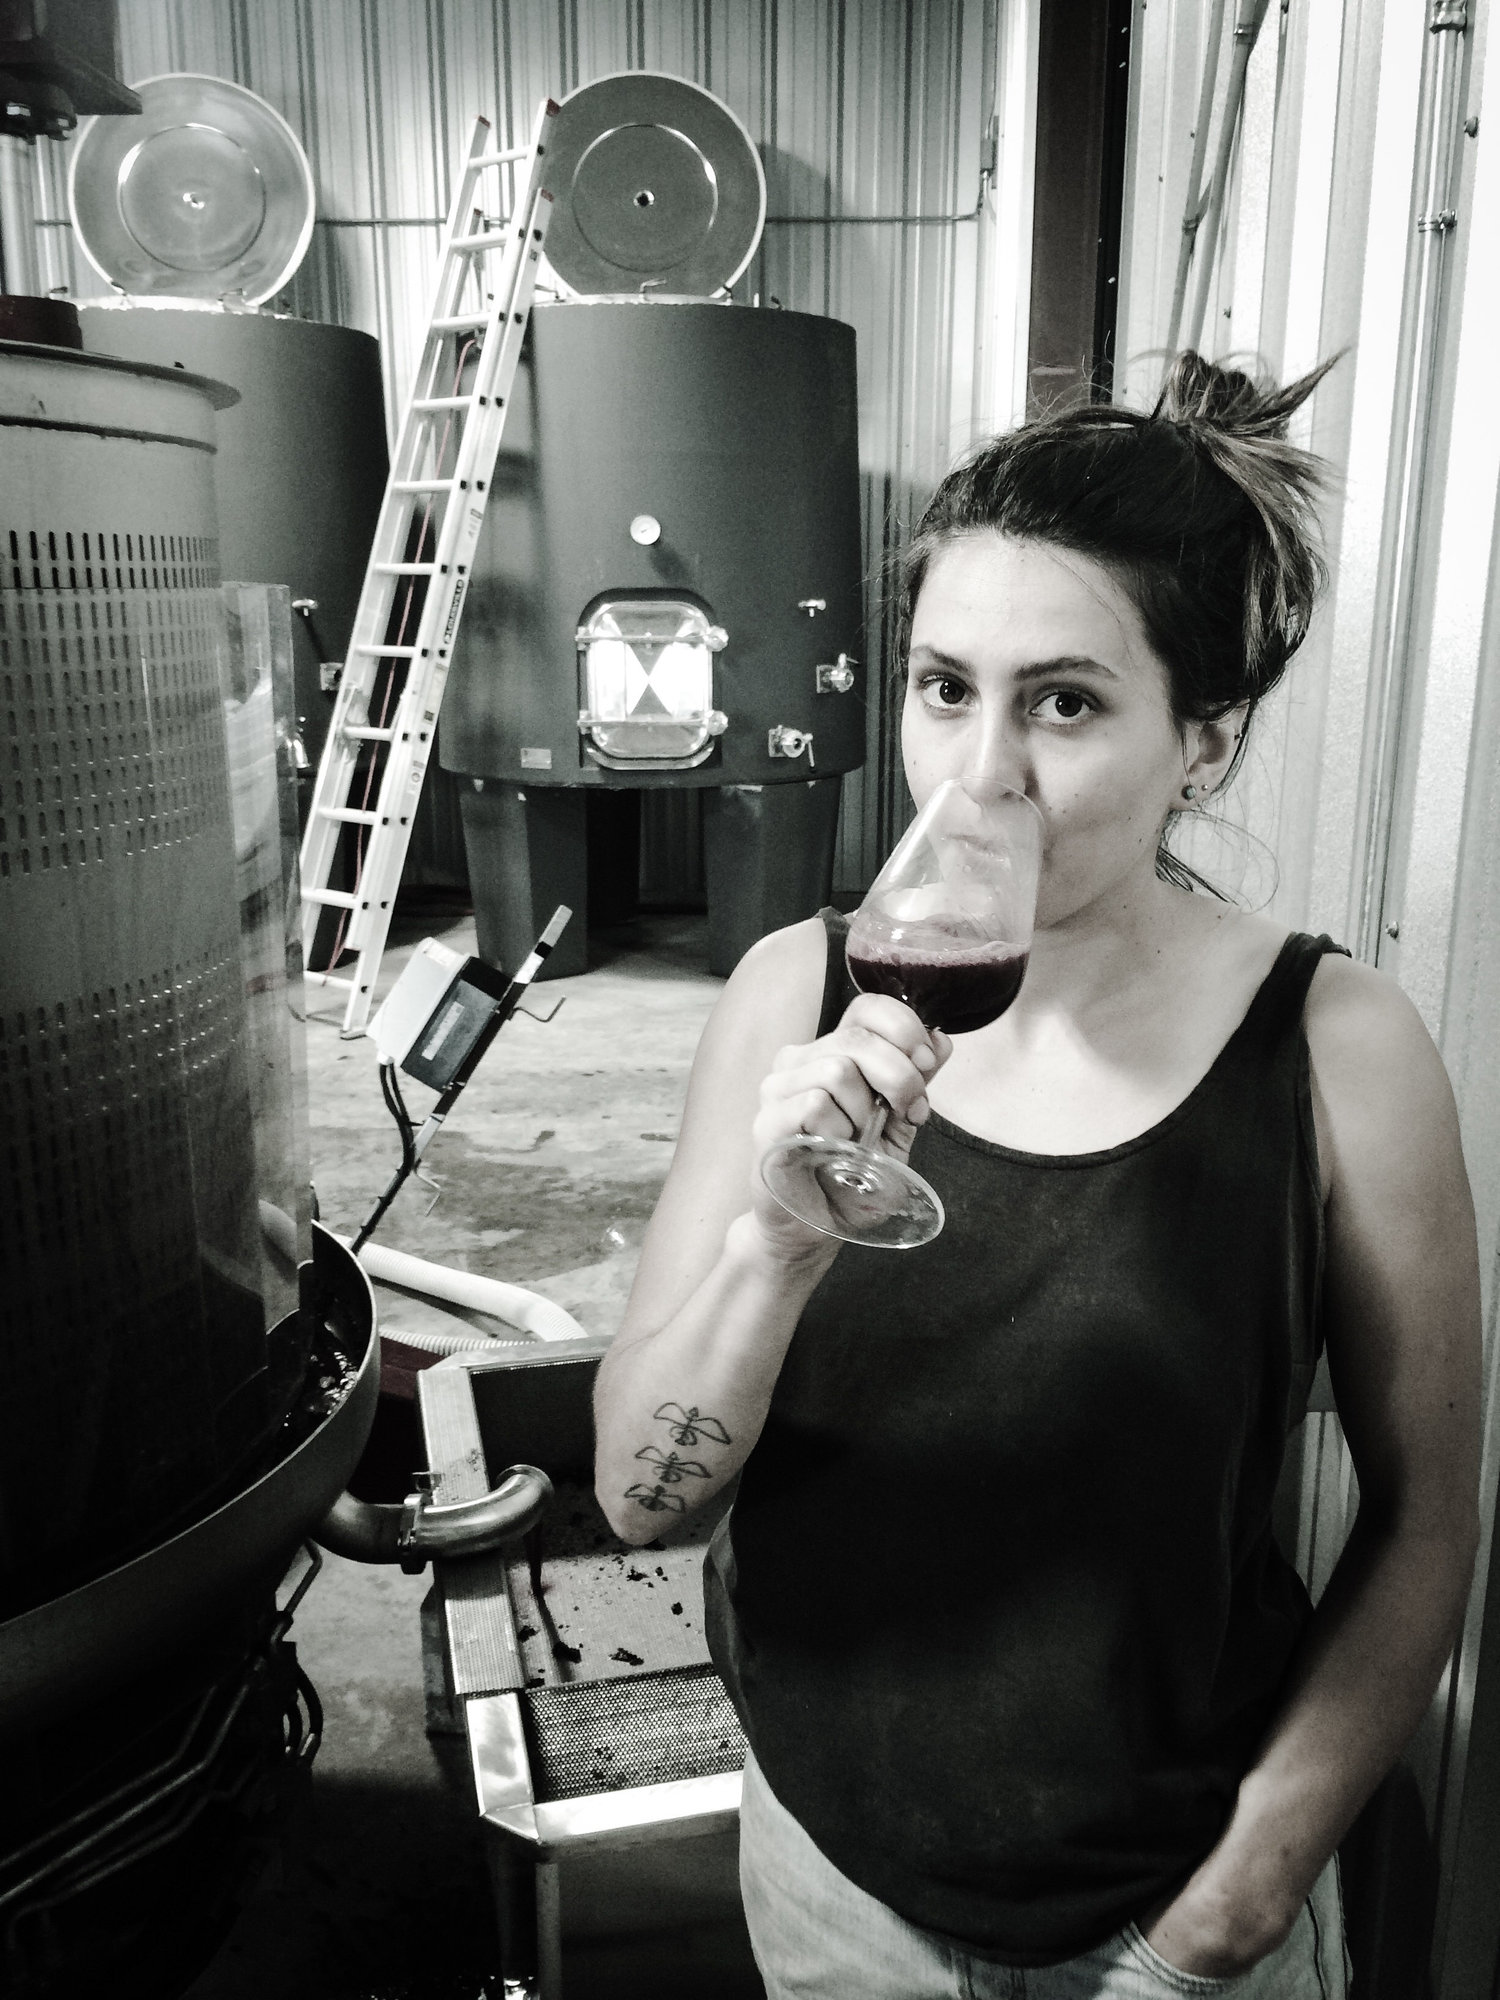 ADRIENNE BALLOU, 12.14.18 - Adrienne Ballou is a rockstar in the Texas wine industry. She produced her first solo wine this year, a 100% Texas Mourvedre bottled under the label Lightsome Wine. A graduate of UC Davis, Adrienne has worked in cellars in France, Washington, and Australia, and is now assistant winemaker for Calais winery.